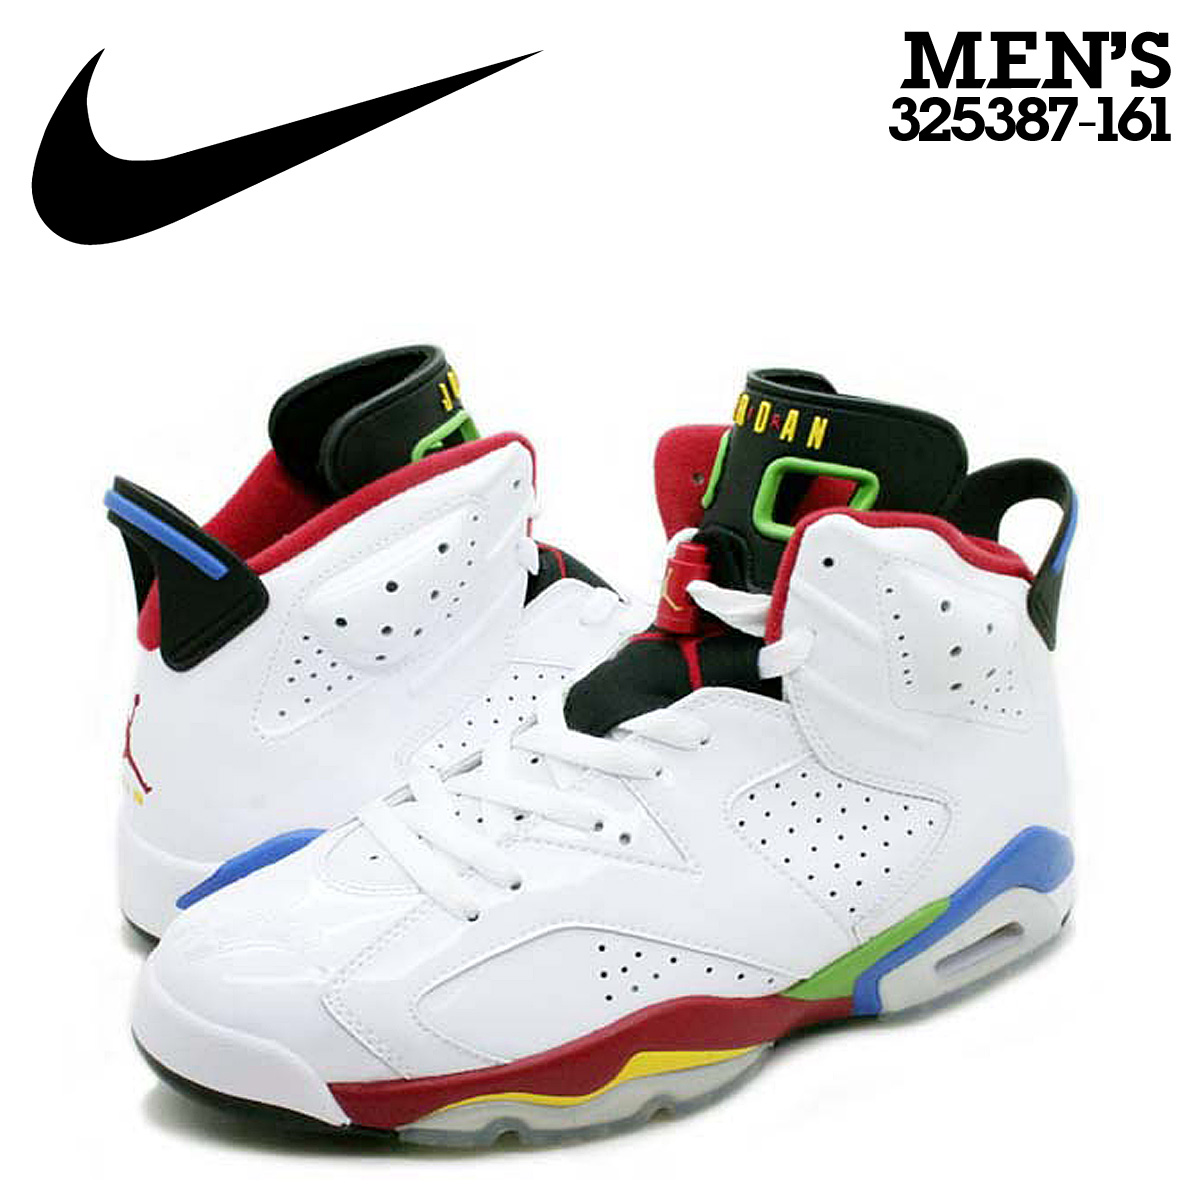 ALLSPORTS   SOLD OUT  Nike NIKE Air Jordan sneakers AIR JORDAN 6 ... 0f4bec1ead